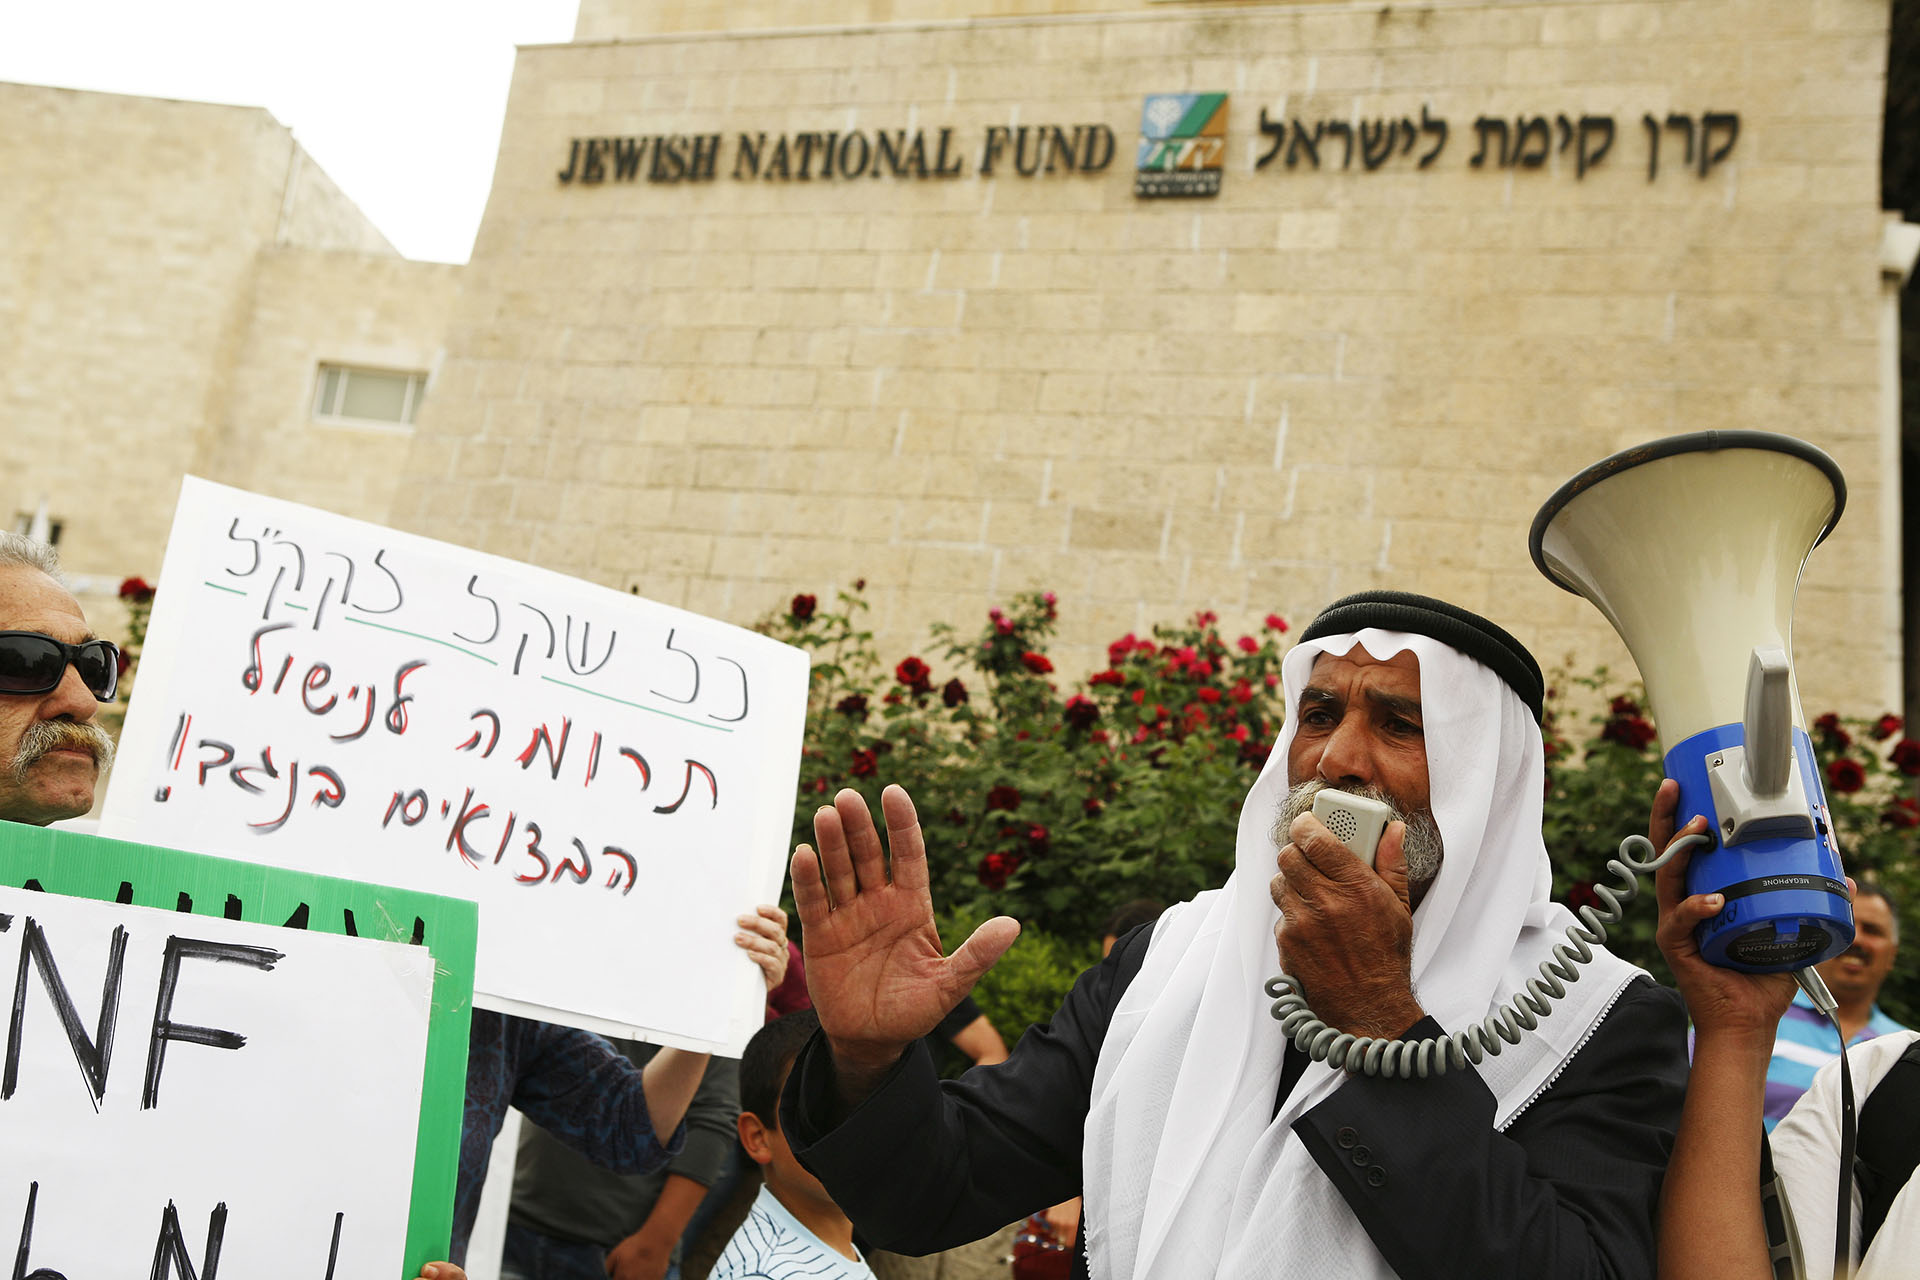 Outside the headquarters of the JNF, Sheikh Sayah protests the demolition of his village. The JNF and the state are plating a forest where the homes of the Al Turi stood. Jerusalem, April 2012